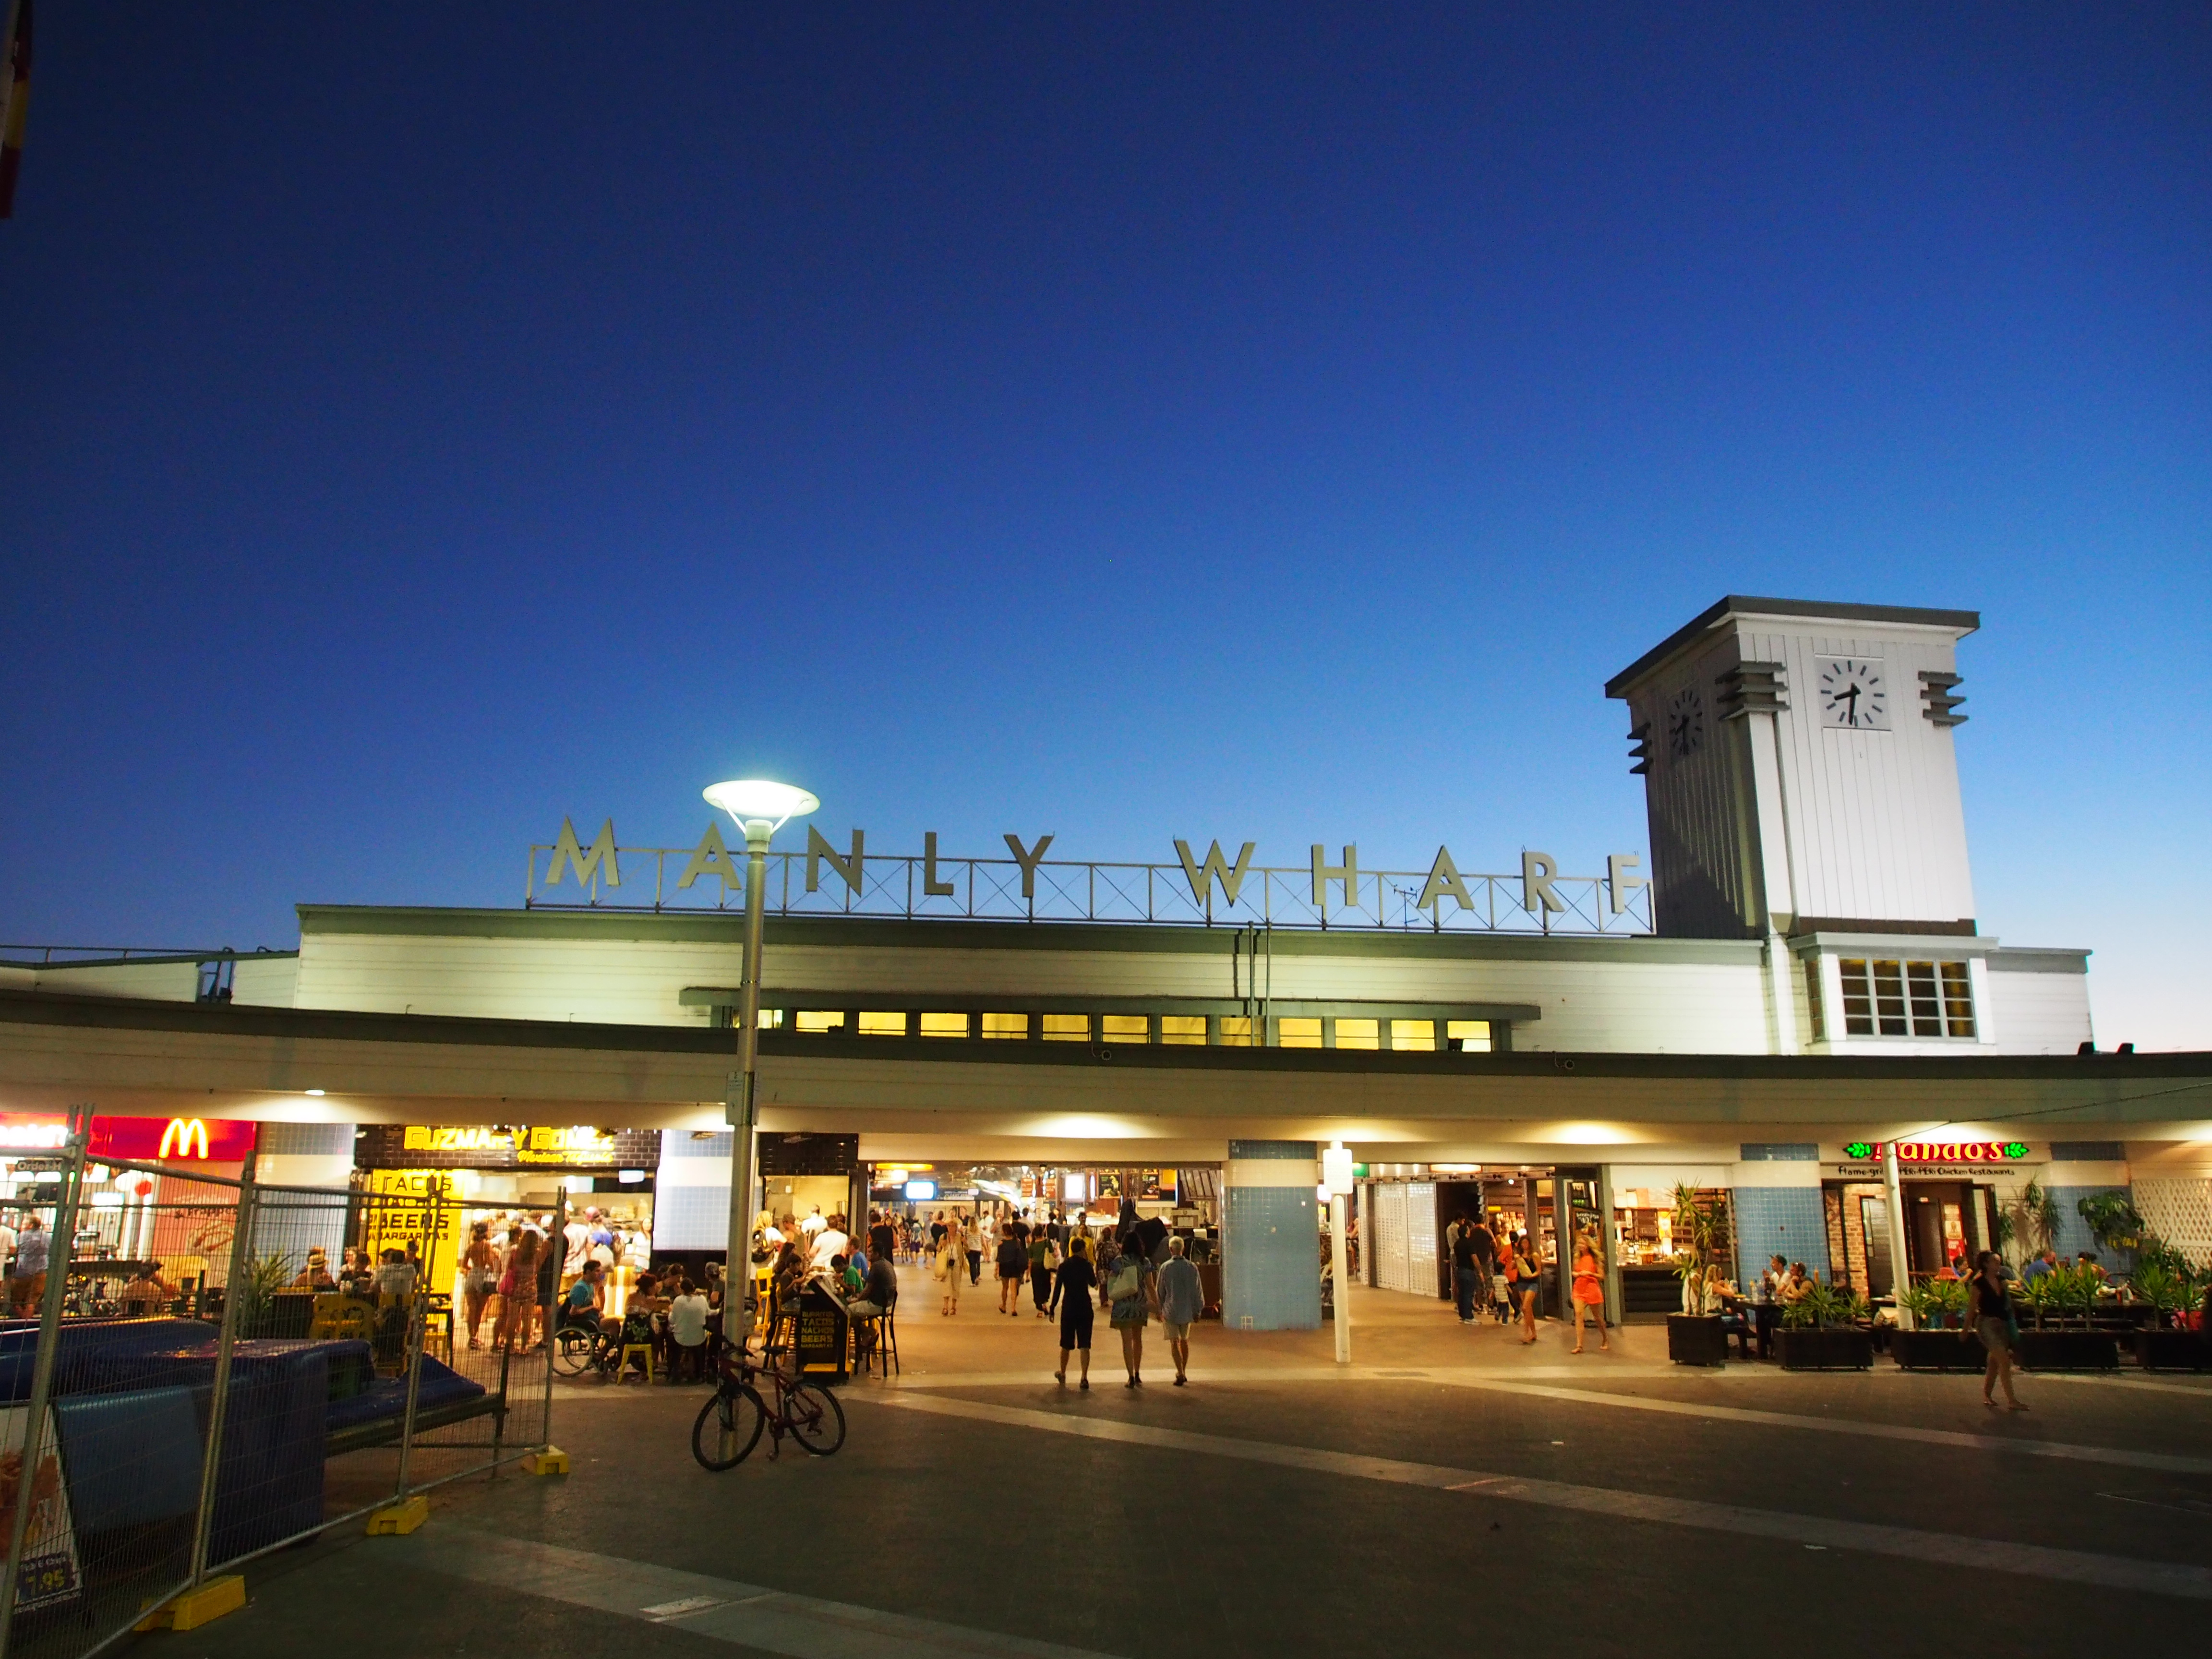 Manly ferry wharf - Wikipedia